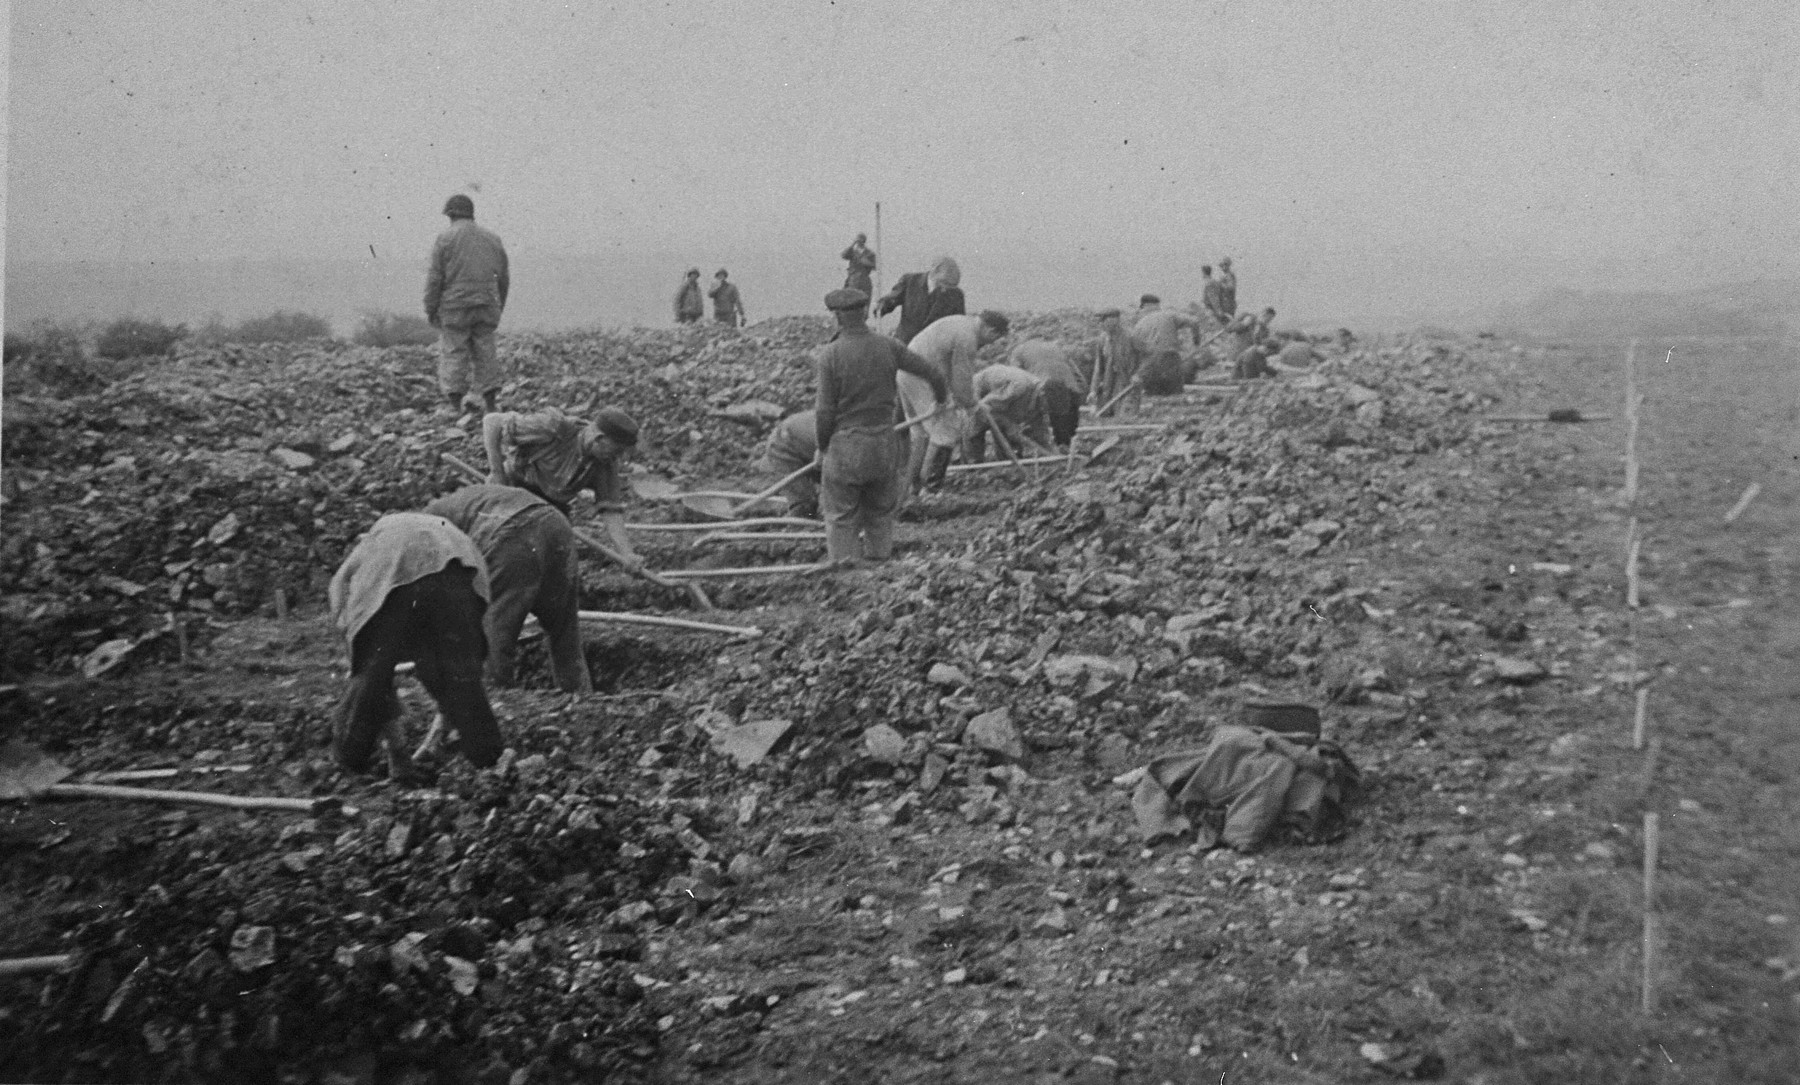 German civilians conscripted from nearby towns dig graves for prisoners killed in Ohrdruf.